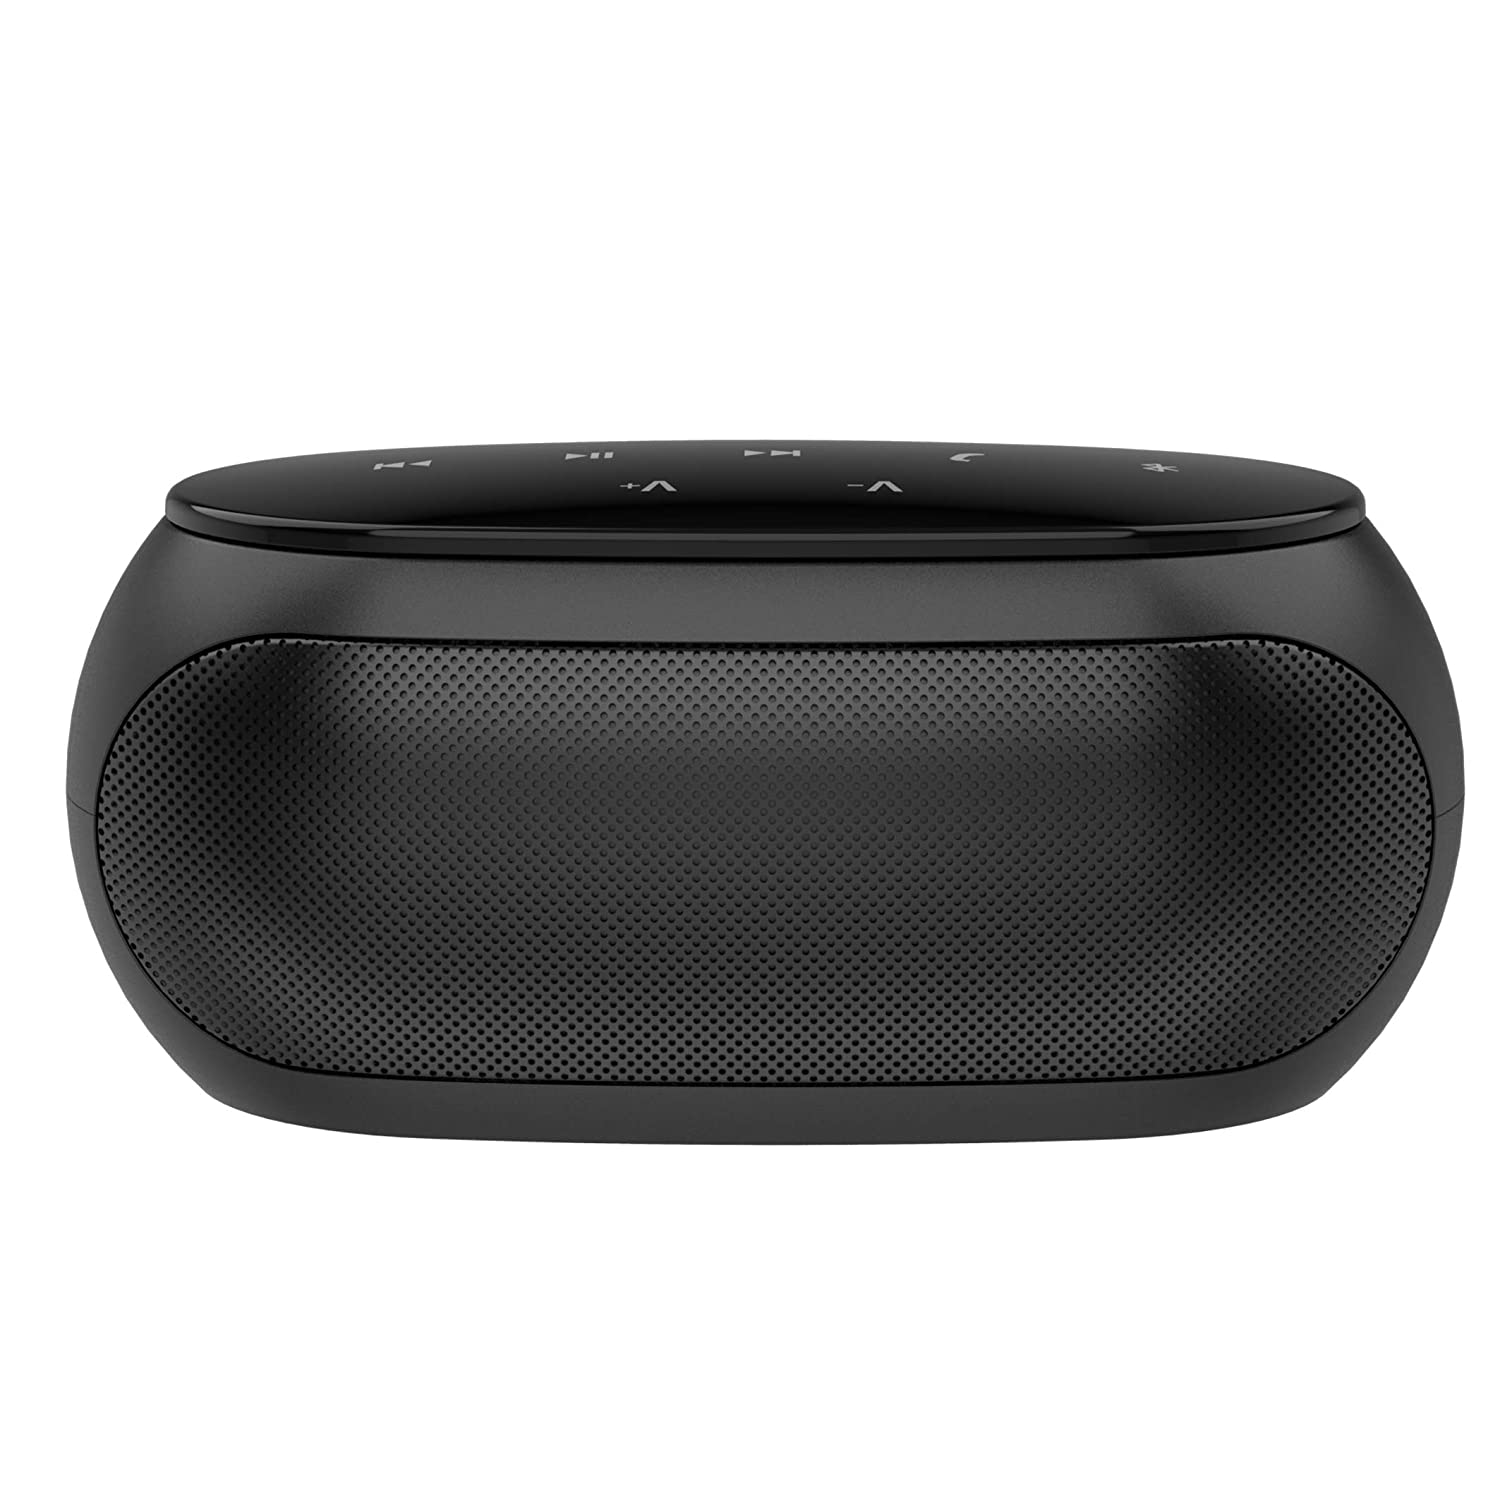 Mini Speaker Camera, HD 4K Video Recorder, Music Player Wireless WiFi, Bluetooth, Loop Recording, Nanny Cam for Home Security